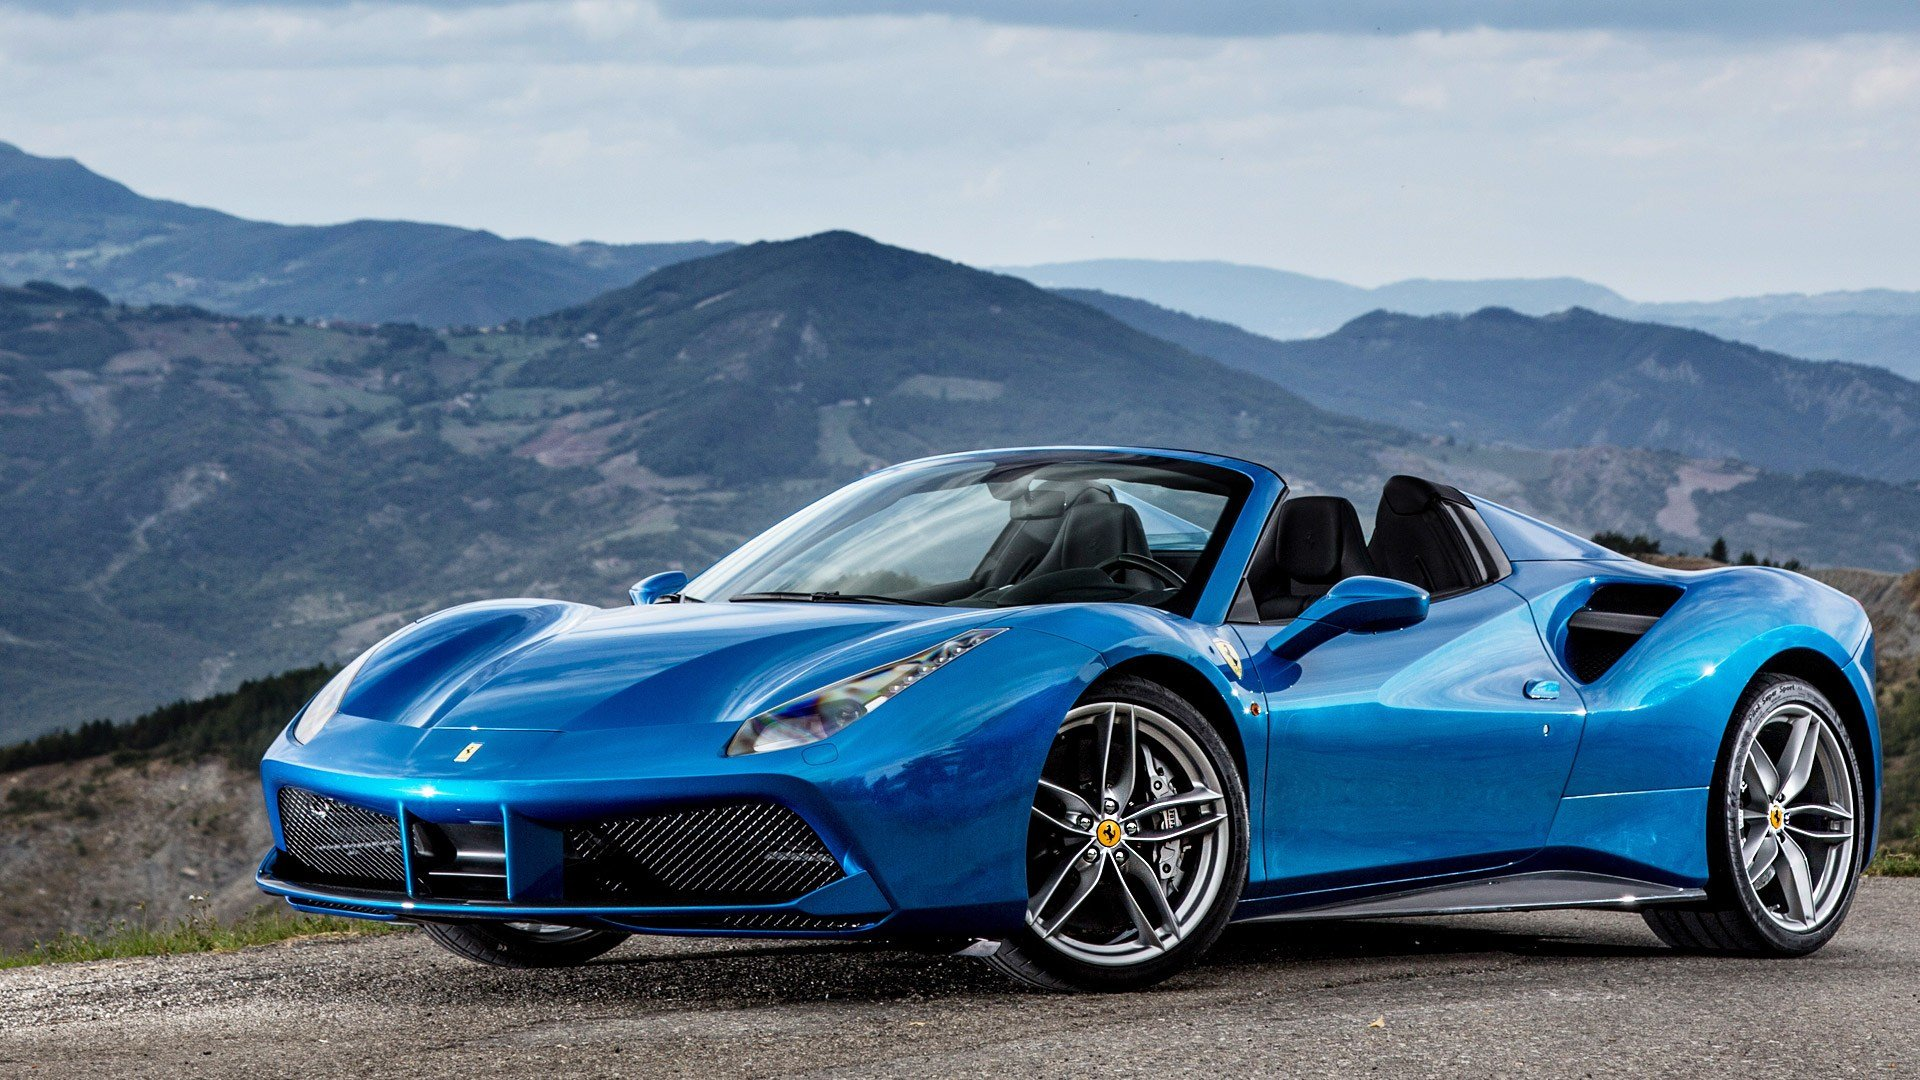 Latest Ferrari 488 2017 Spider Exterior Car Photos Overdrive Free Download